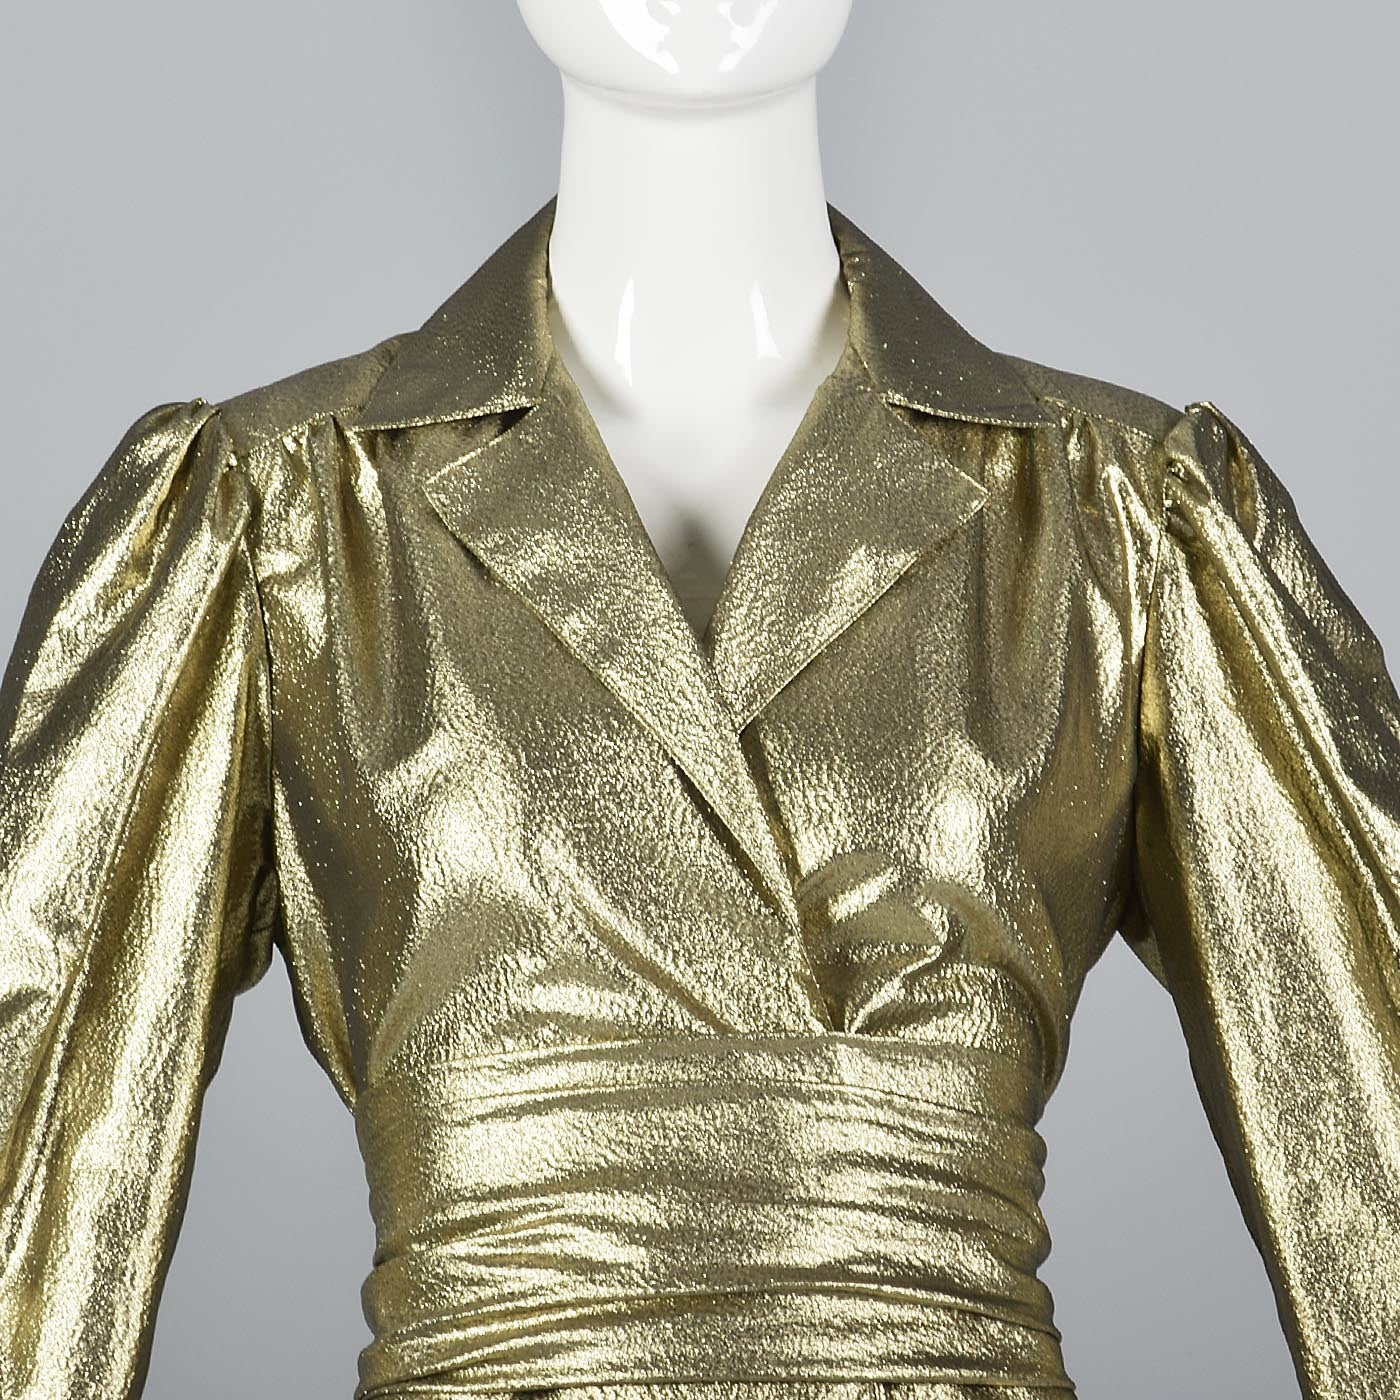 1970s Mollie Parnis Gold Lamé Blouse with Bishop Sleeves